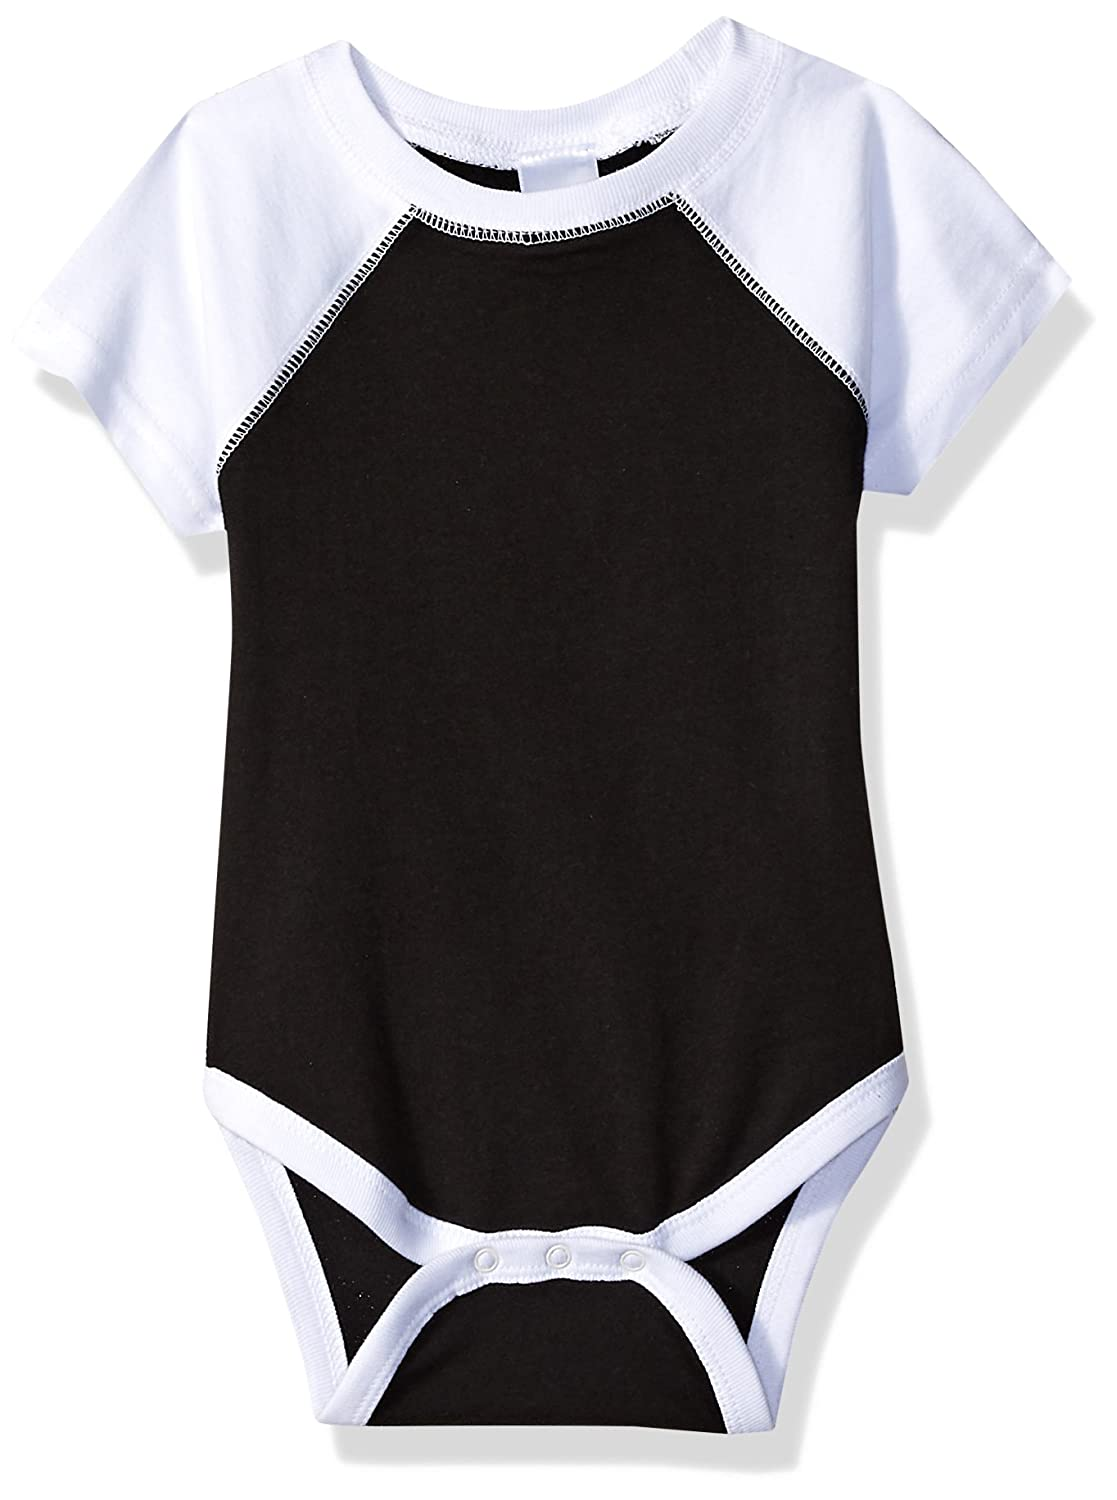 0c5eabddc62 Infant Baseball Bodysuit is an ultra-soft cotton poly blend jersey with  short Raglan sleeves. Made from combed ring spun cotton, polyester and ...